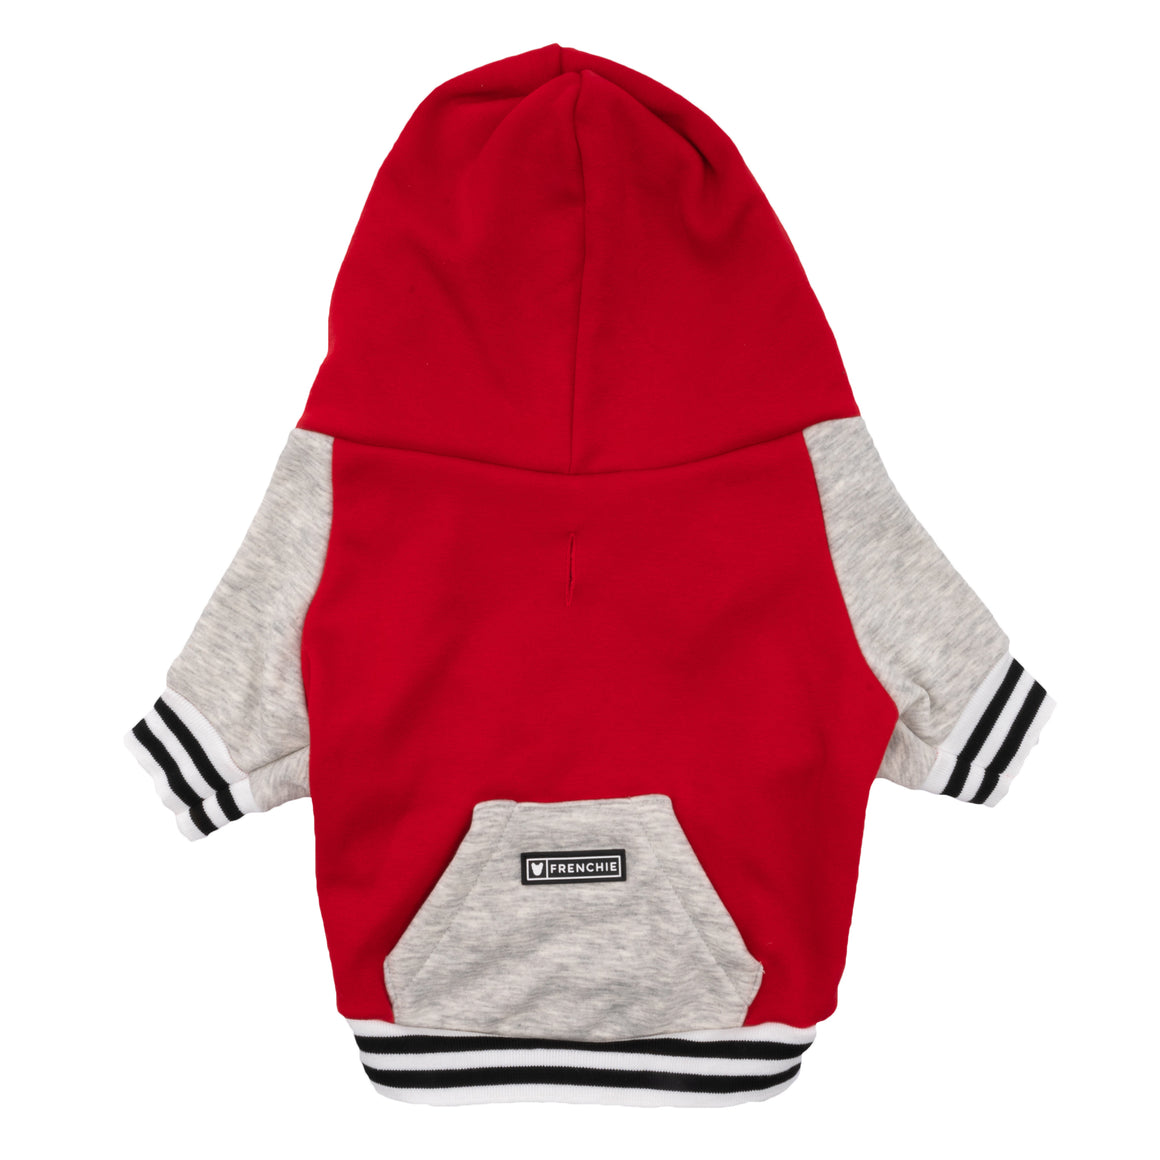 Frenchie Dog Hoodie - Red Varsity